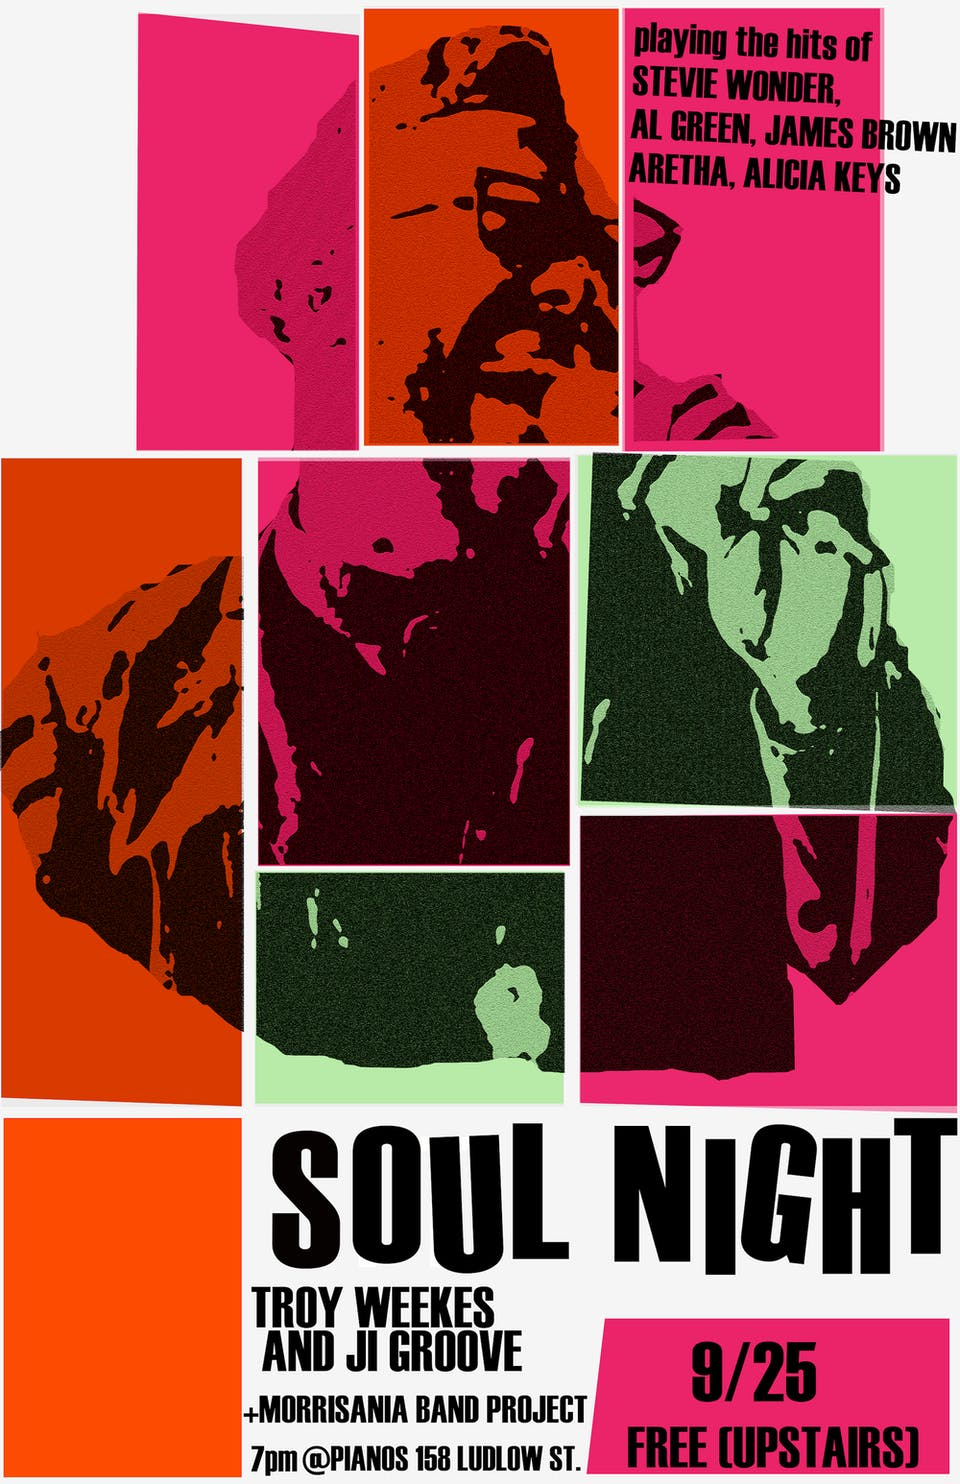 SOUL NIGHT - ft. Troy Weekes and JI Groove + Morrisania Band Project (Free)